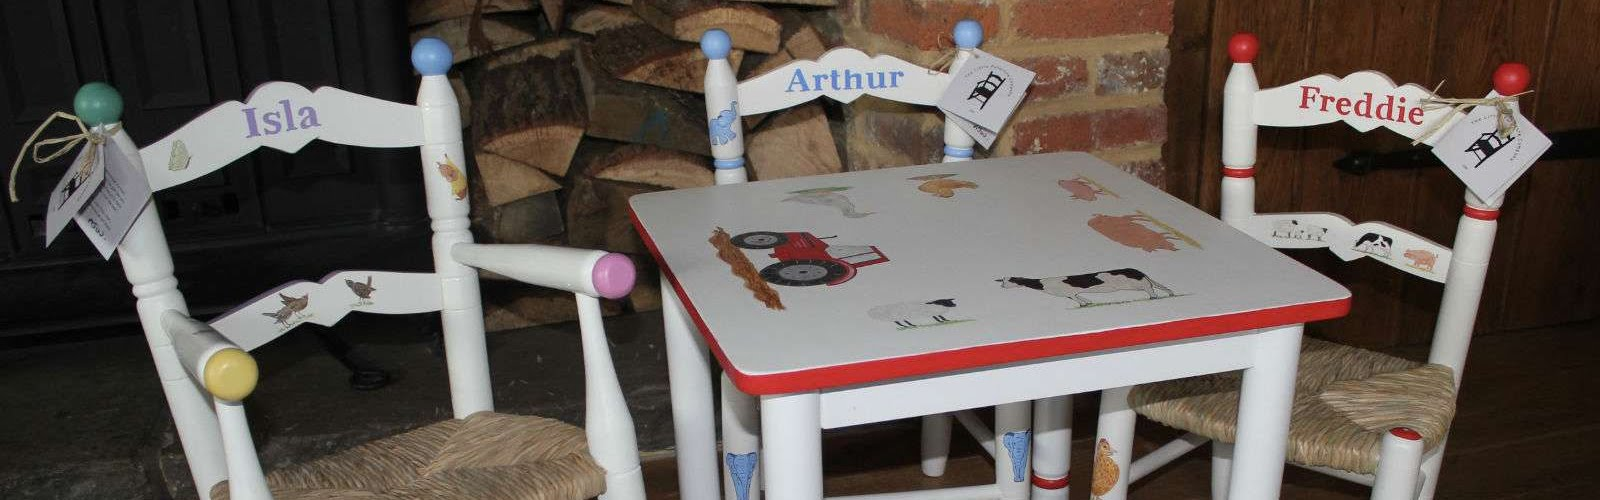 three children's chairs with kids names on them next to a children's table